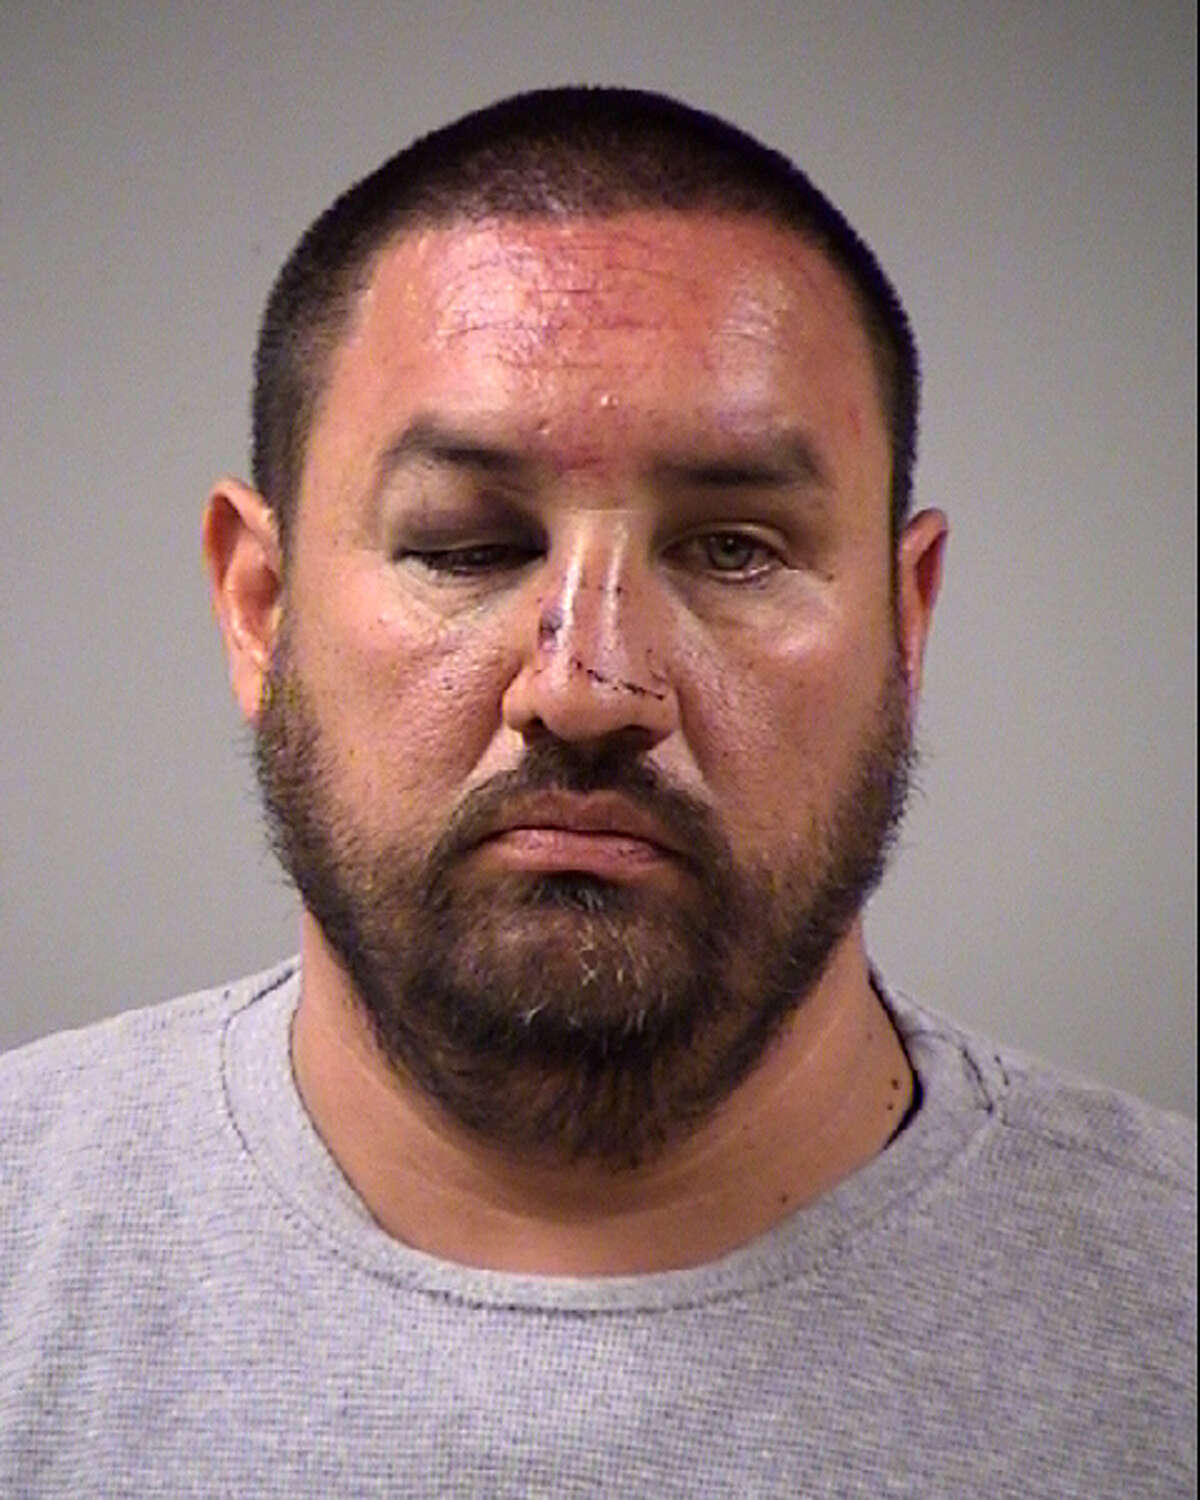 Mike Flores Jr. seen in a mugshot after a state arrest in 2013. Court records show Flores was arrested Aug. 3 after he allegedly bought a kilogram of cocaine from Pedro Requejo Gutierrez, 68, and crashed while fleeing from agents.